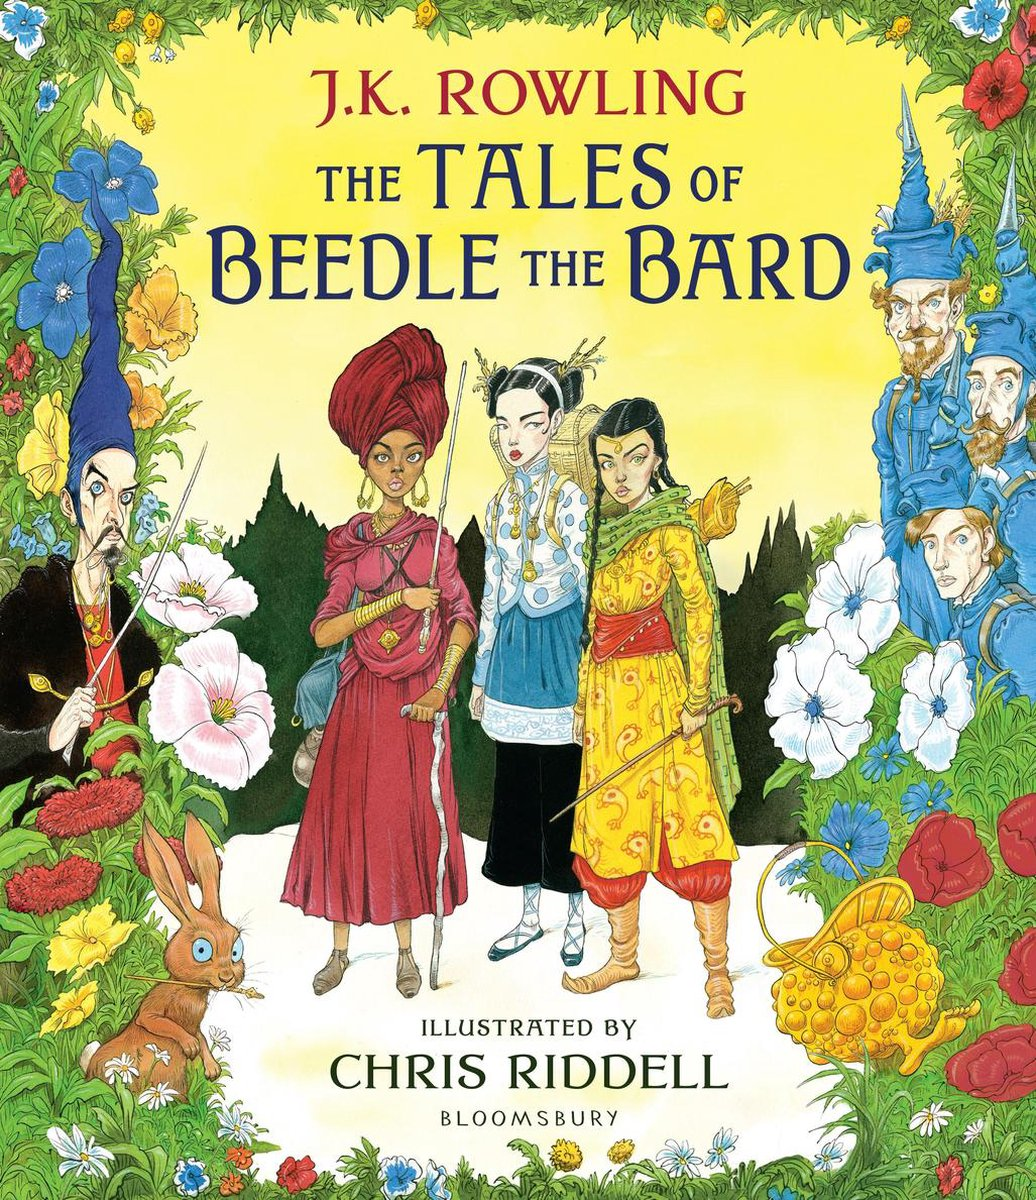 The Tales of Beedle the Bard - Illustrated Edition : A magical companion to the Harry Potter stories - J.K. Rowling